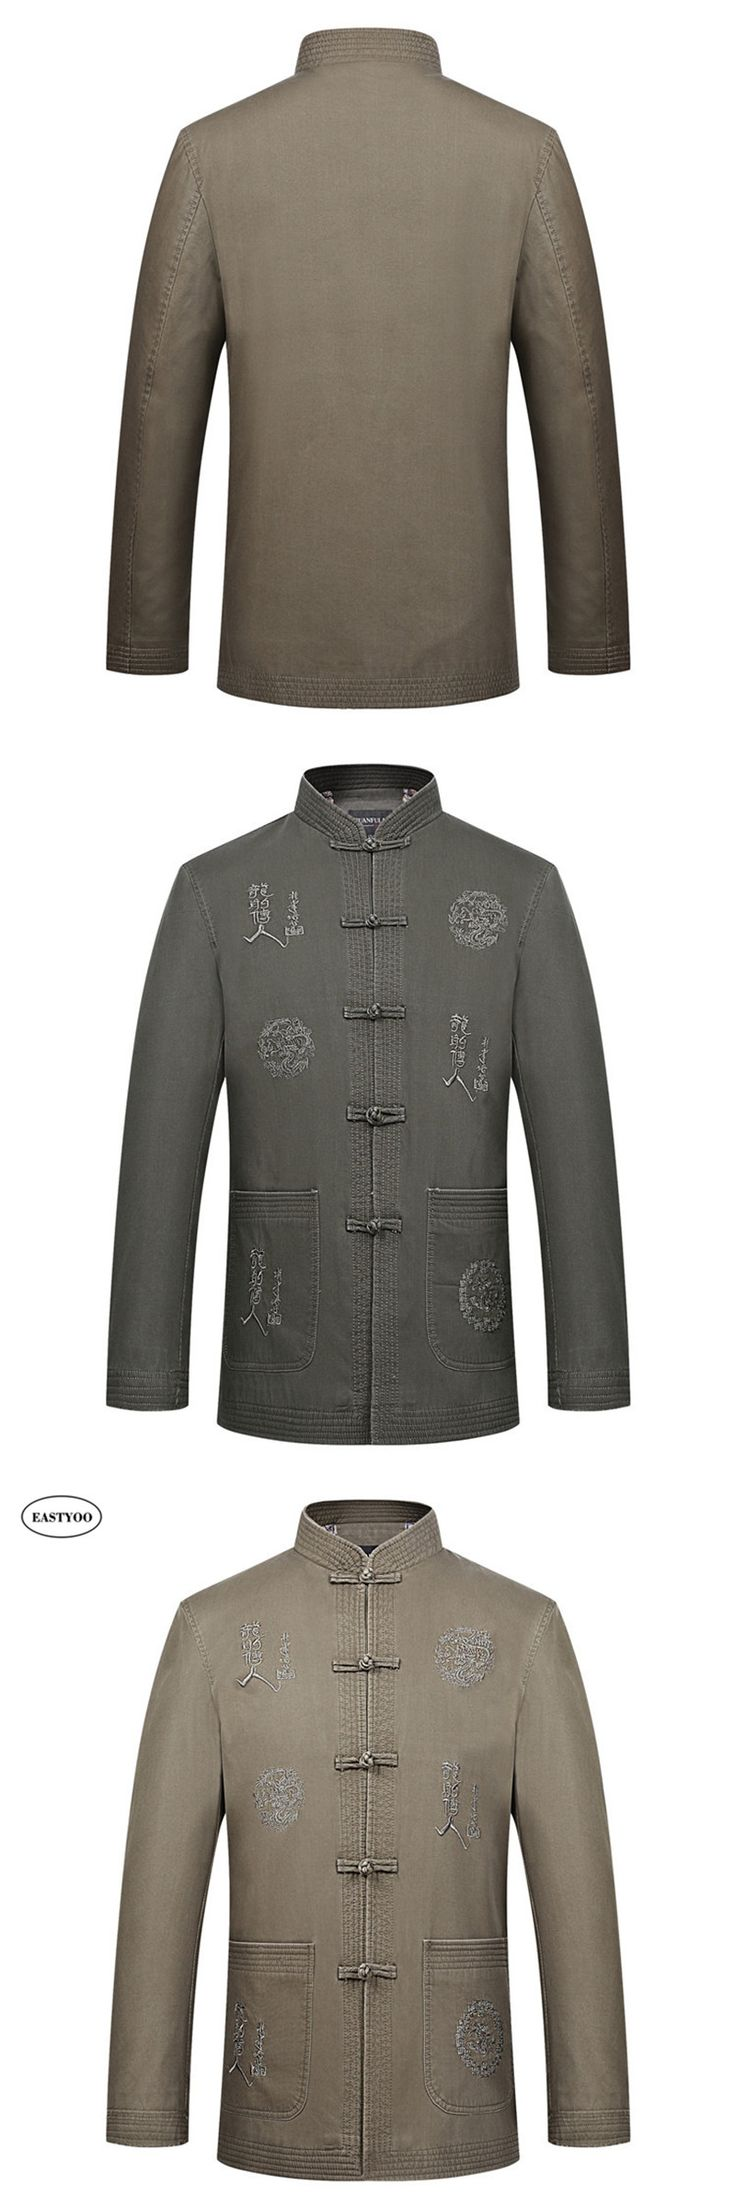 Mandarin Collar Jackets Men Cotton Jackets Plus Size Chinese Style Clothing Button Tang Jacket Green Han Fu Winter Chinese Tops